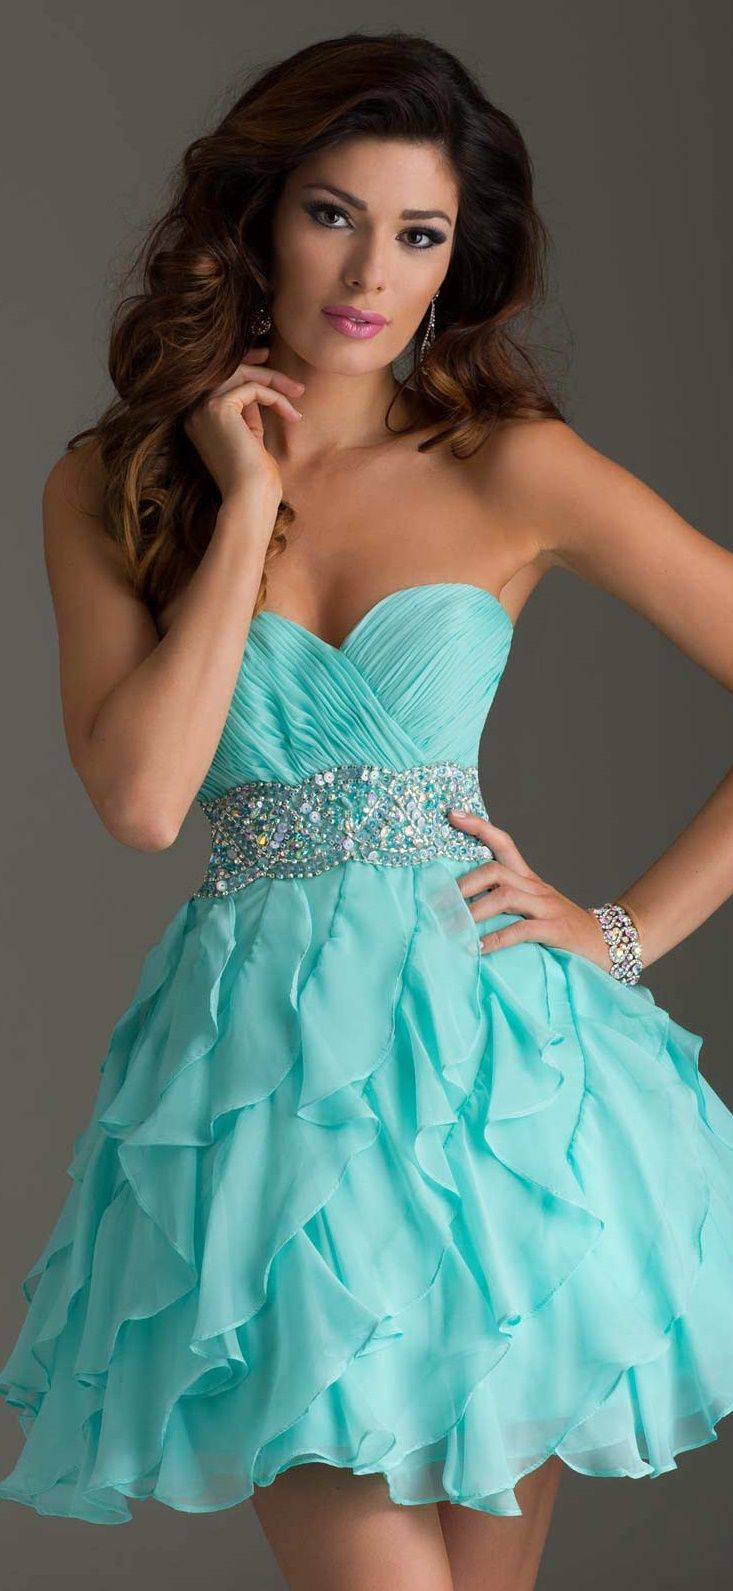 96 best Homecoming & Graduation Dresses images on Pinterest | Grad ...